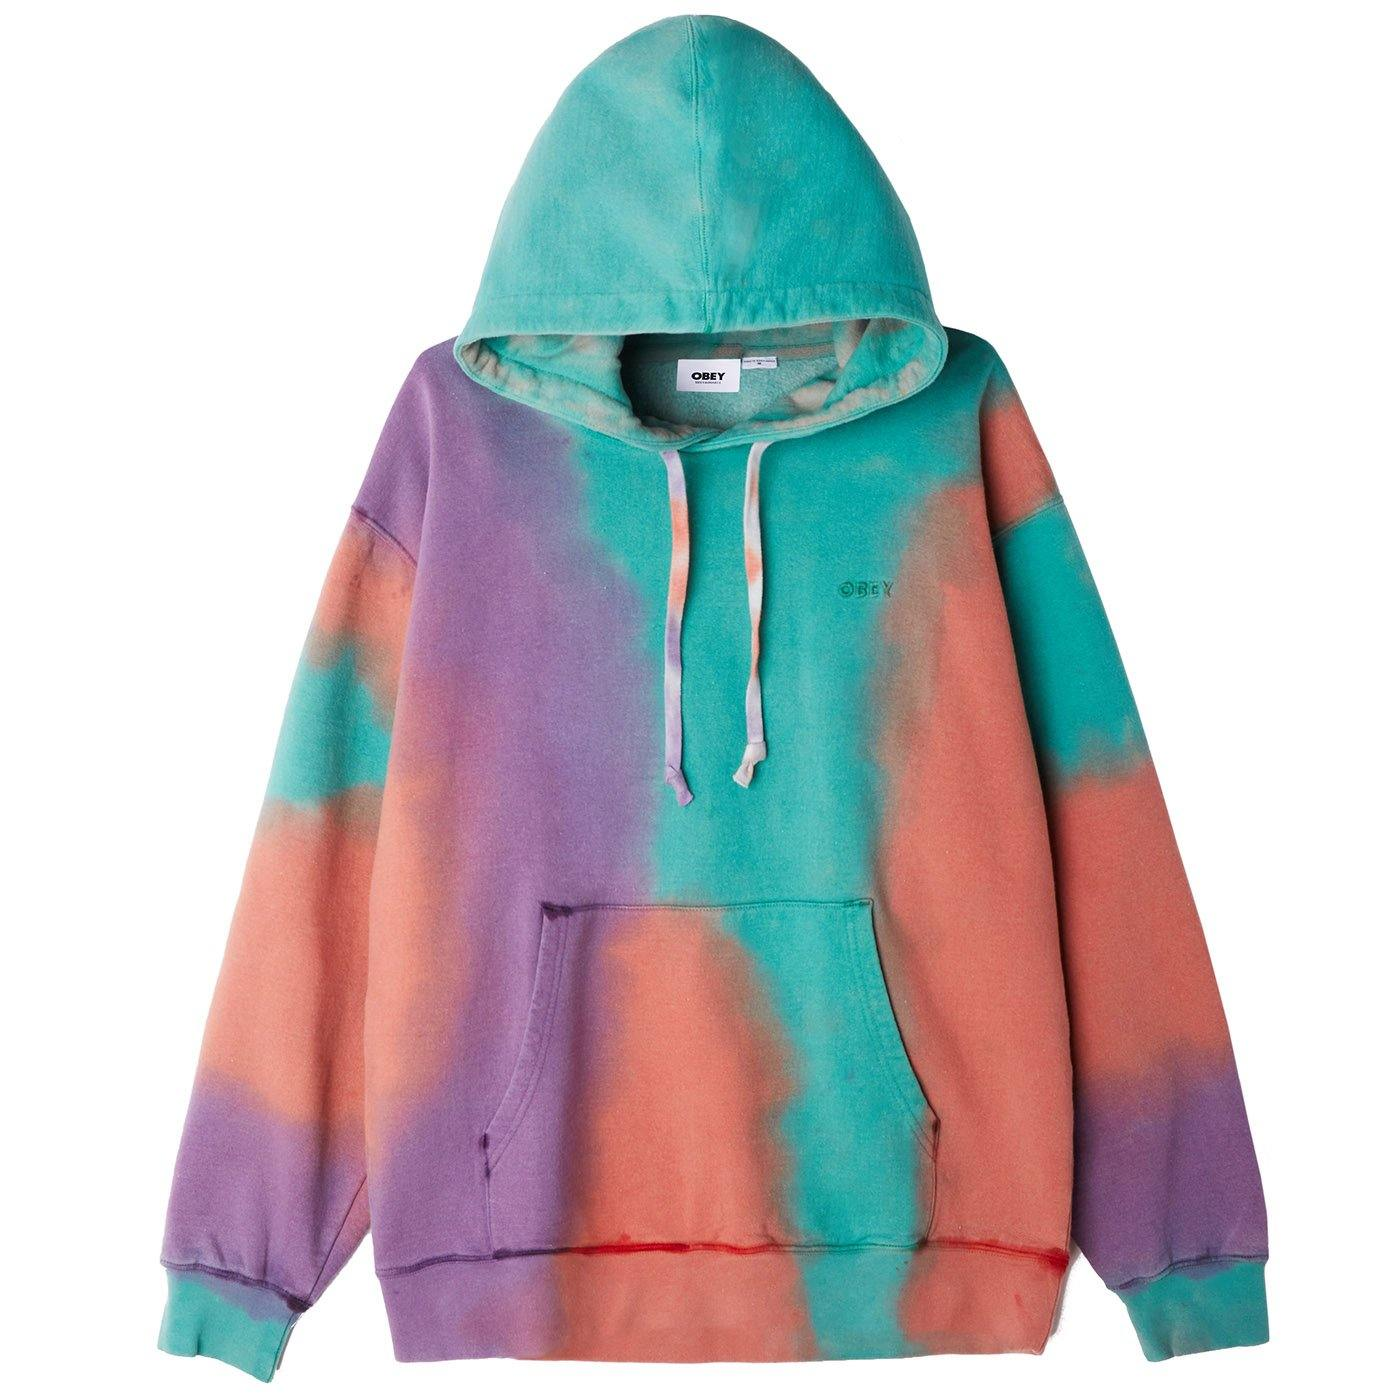 Obey sustainable tie dye Pullover Hood-purple nitro multi - WATERKANT Store  |  Ottensen-Hamburg Ottensen Altona